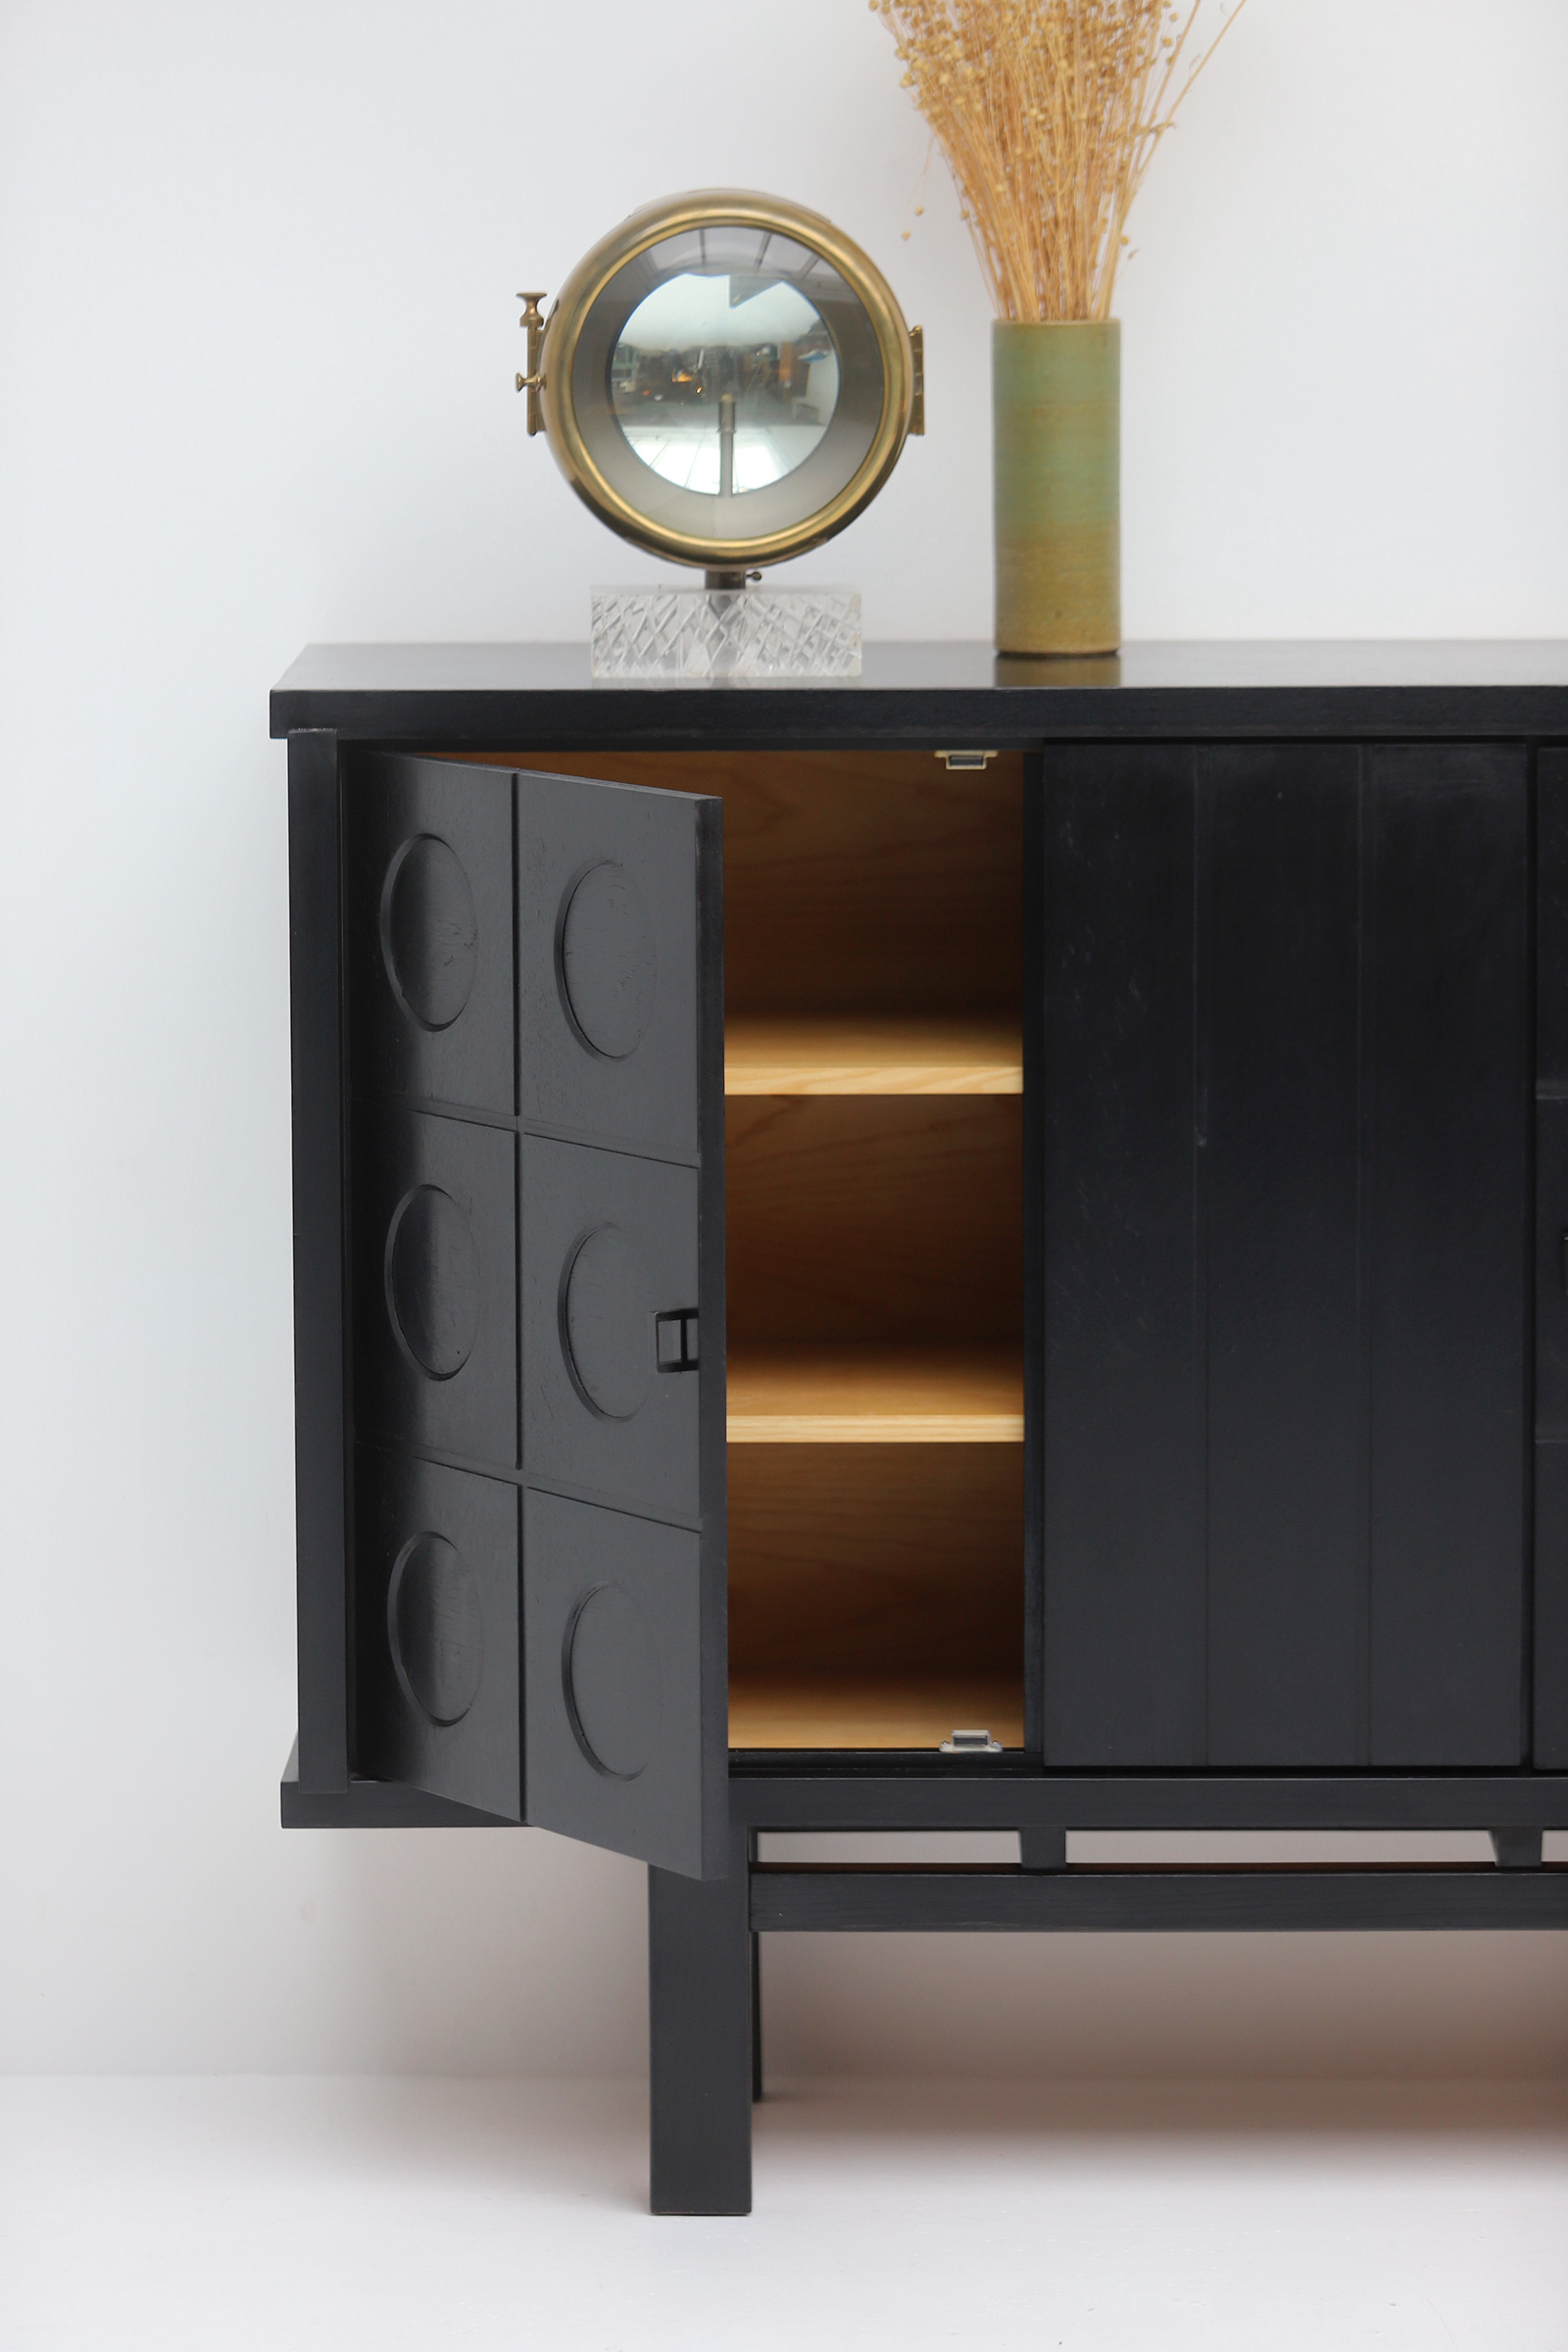 Decorative Black Cabinet with Patterned doors image 3